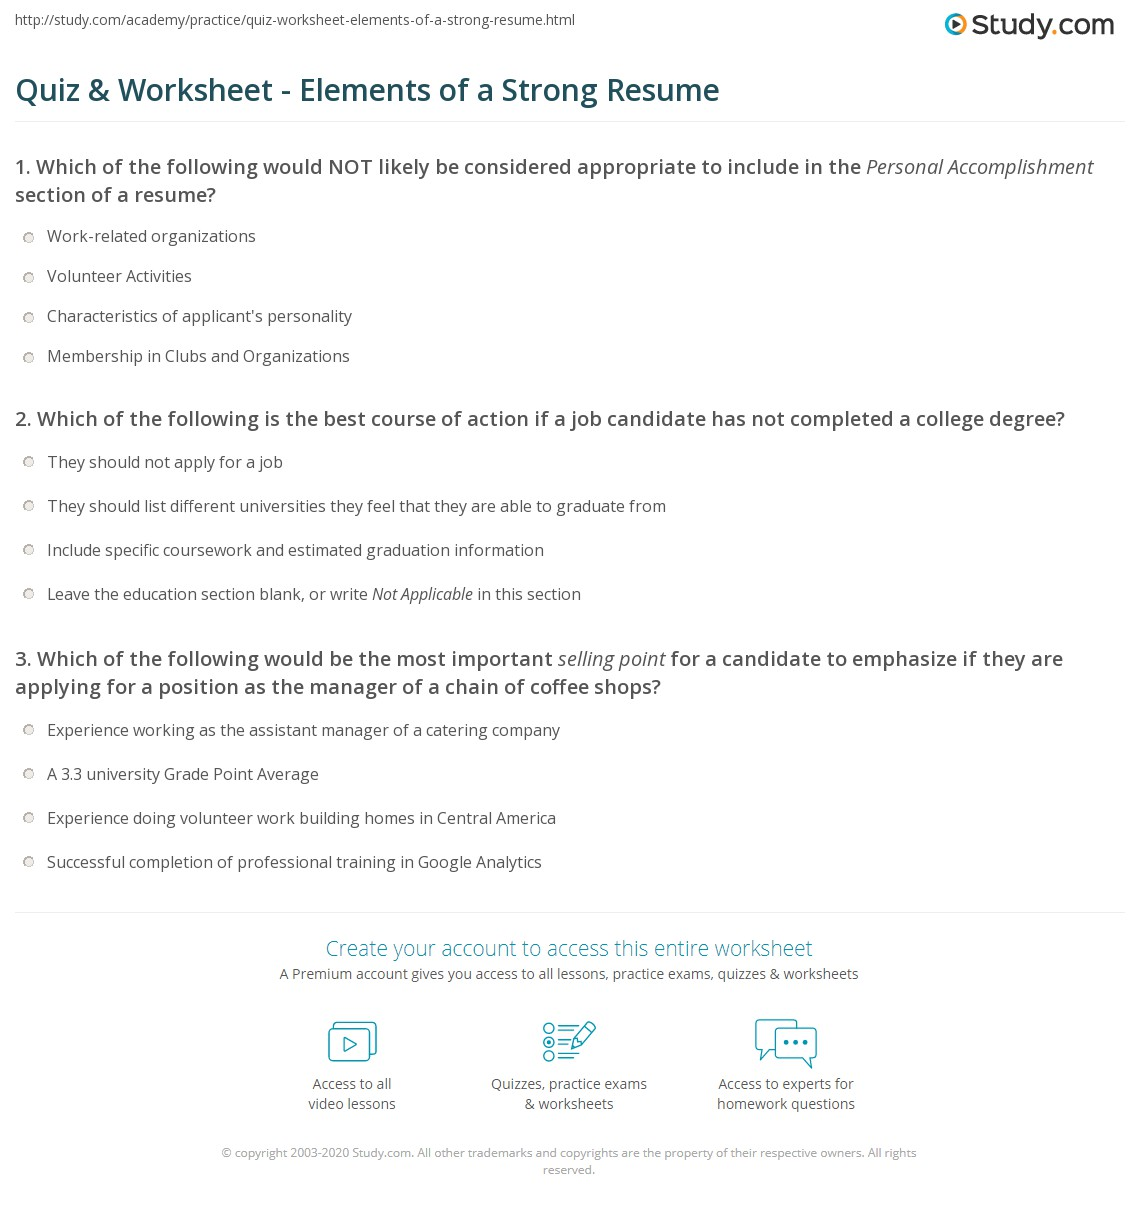 worksheet Drawing Conclusions Worksheets 5th Grade types of business letters for english learners template cover quiz amp worksheet elements a strong resume study com